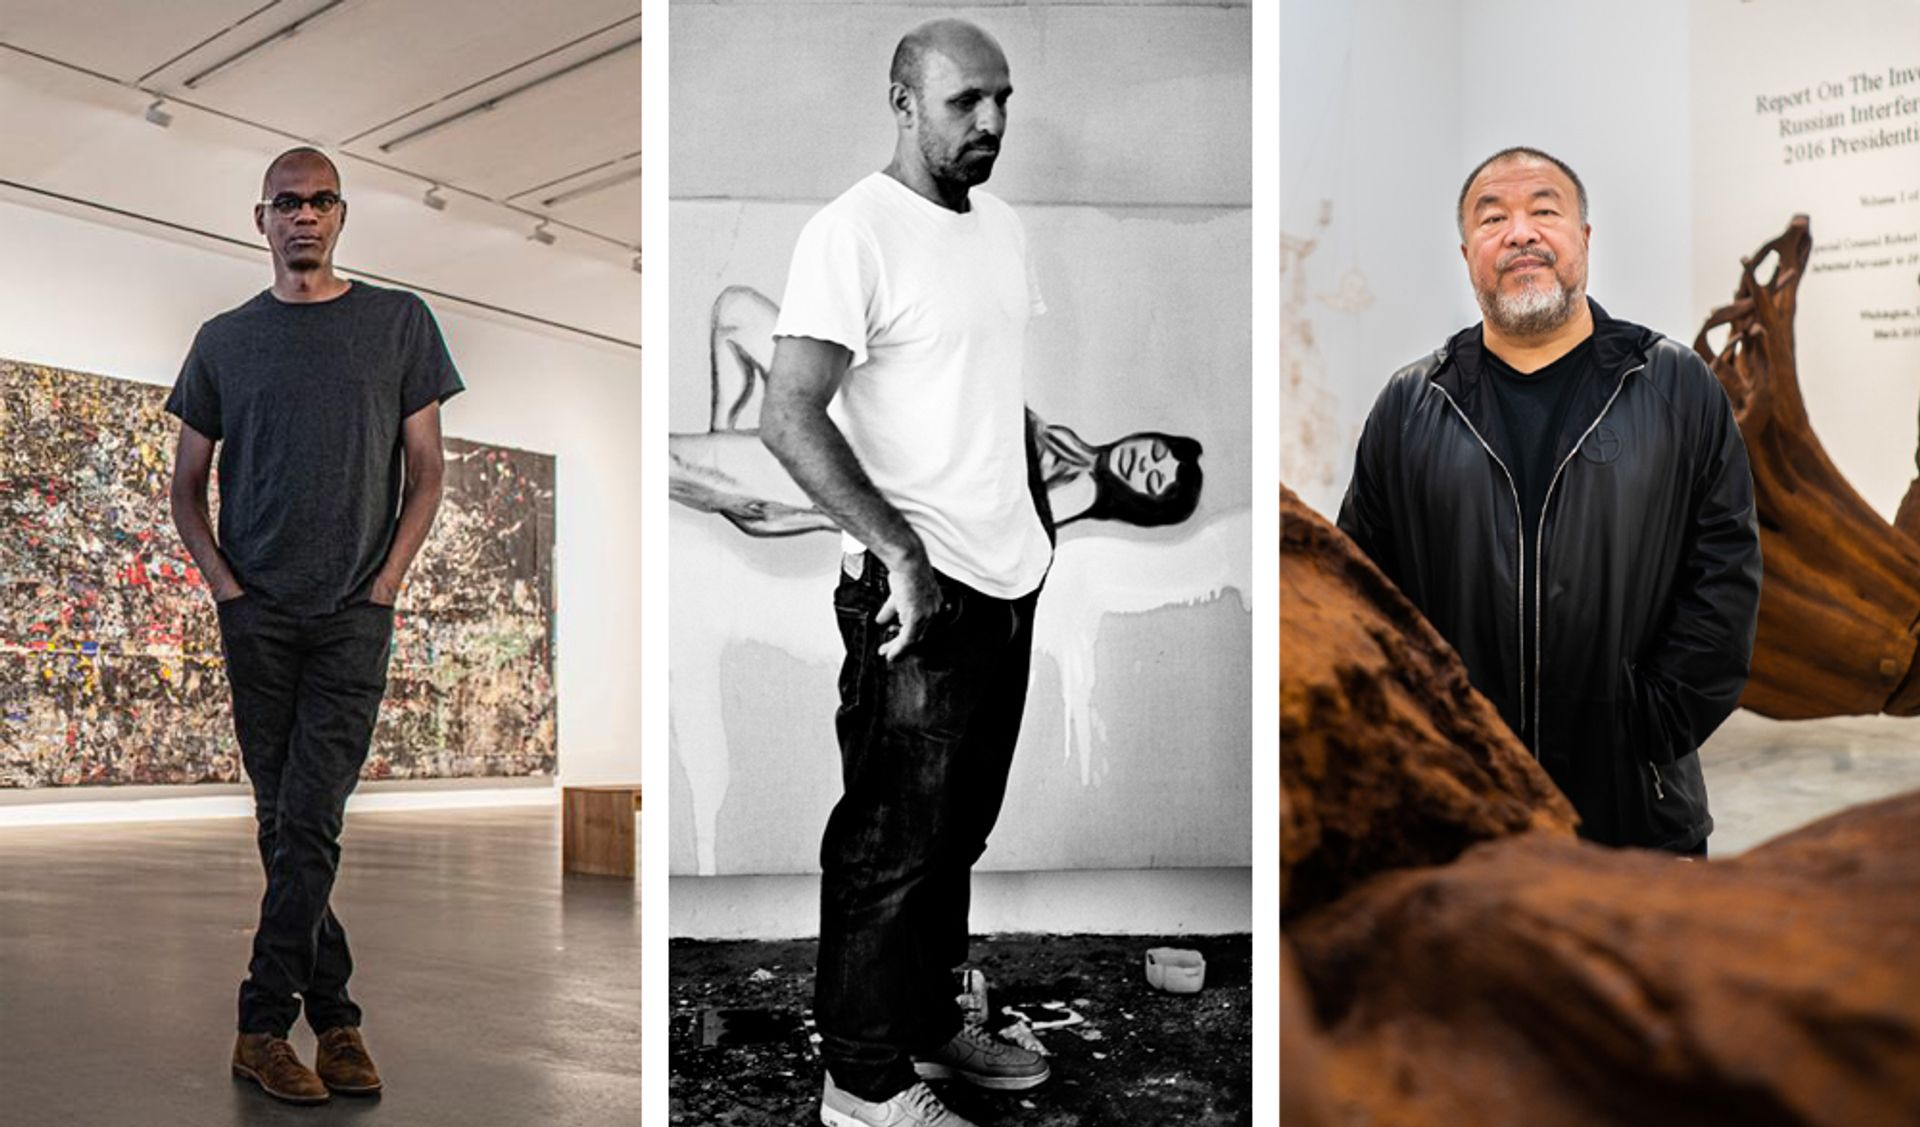 The Art Newspaper podcast speaks to Mark Bradford, Peter Doig and Ai Weiwei this week Photos from left to right: © Sim Canetty- Clark and courtesy of Hauser & Wirth London; © Anton Corbijn and courtesy Michael Werner Gallery, New York and London; and © David Clack